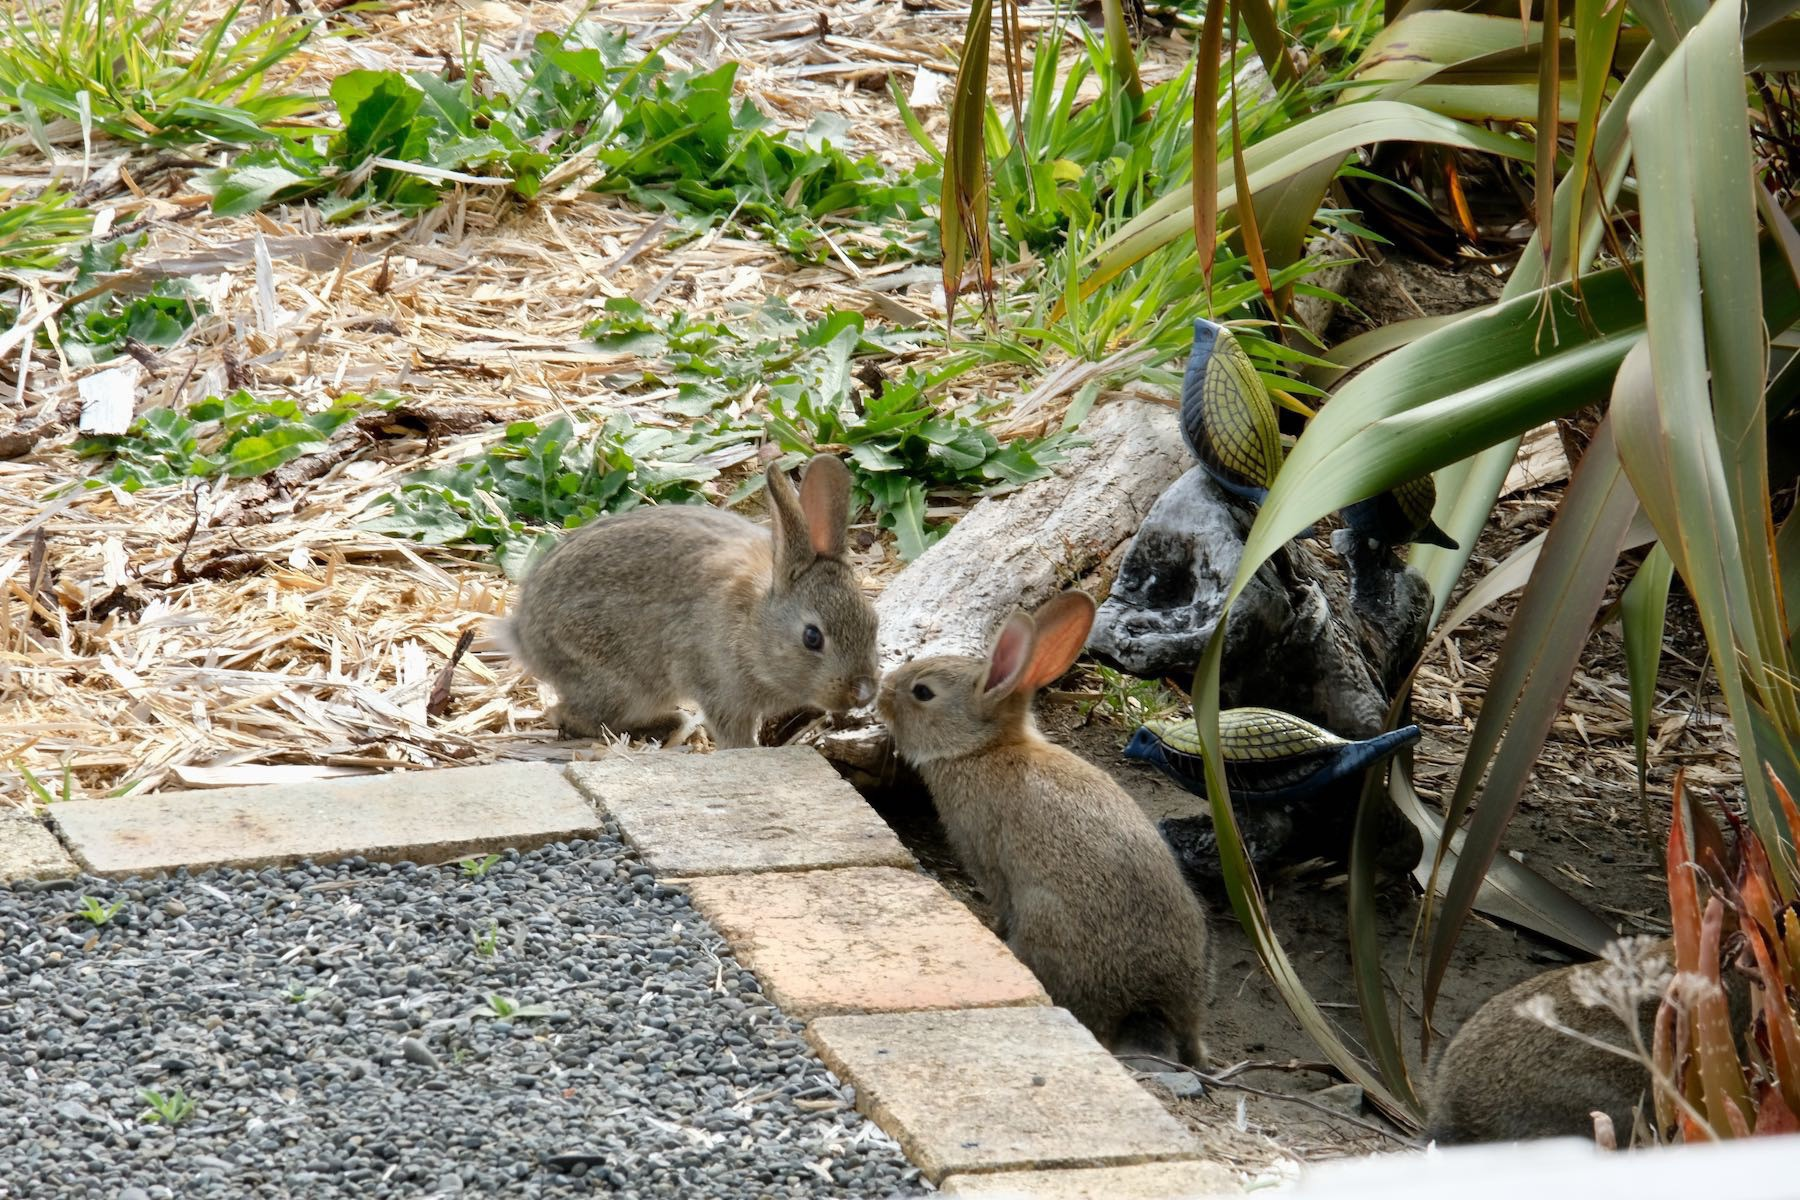 Two tiny rabbits touching noses.